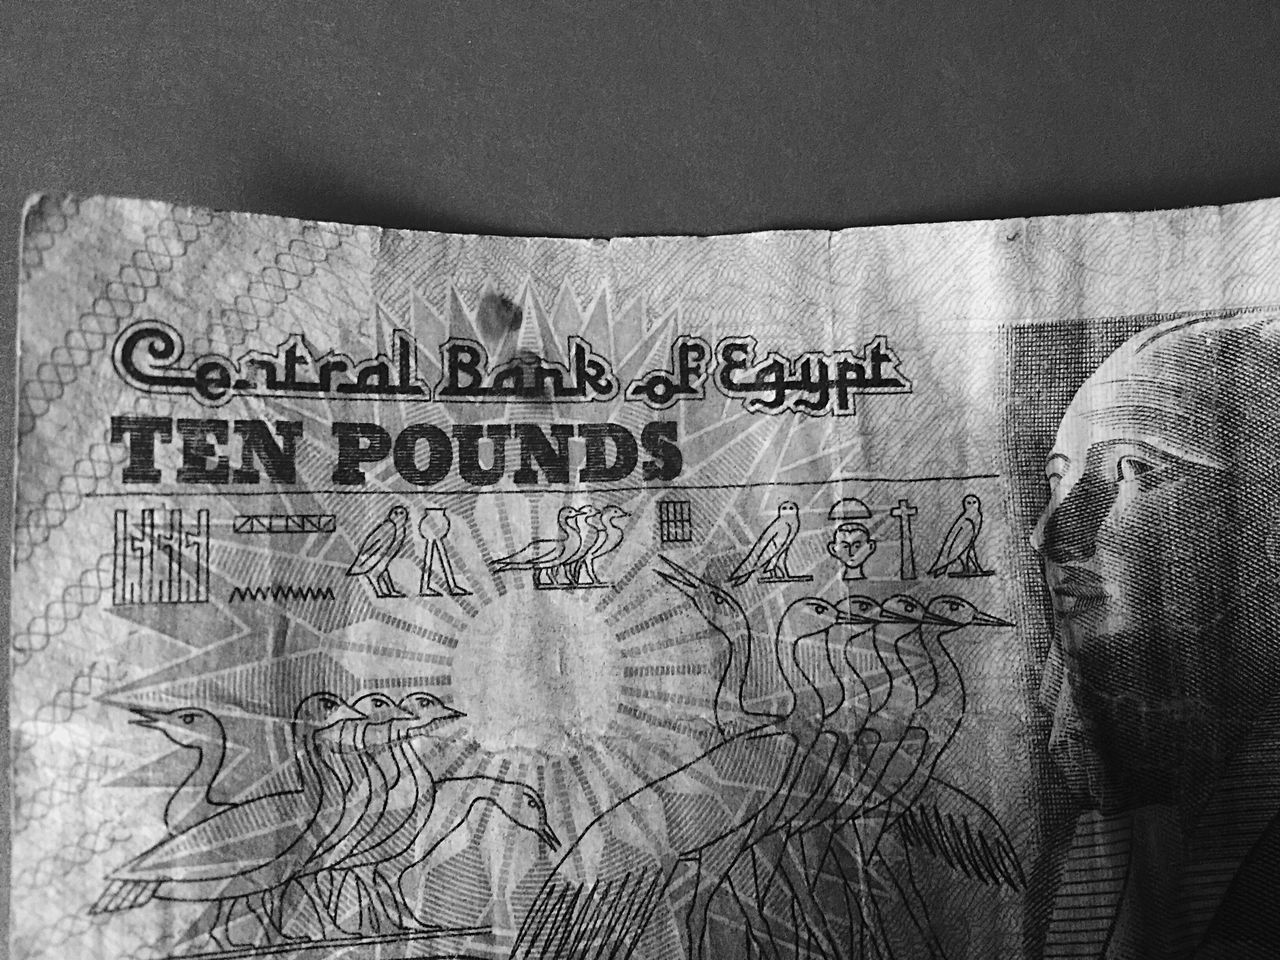 Money Monochrome Blackandwhite Photography Egyptian Egypt Old Money Around The World Bill Ten Pounds Ten Pound Note Ten Egyptian Pounds Oldfashion Paper Change Bank Banking Credit Values Worthy Central Bank Of Egypt Central Bank Business